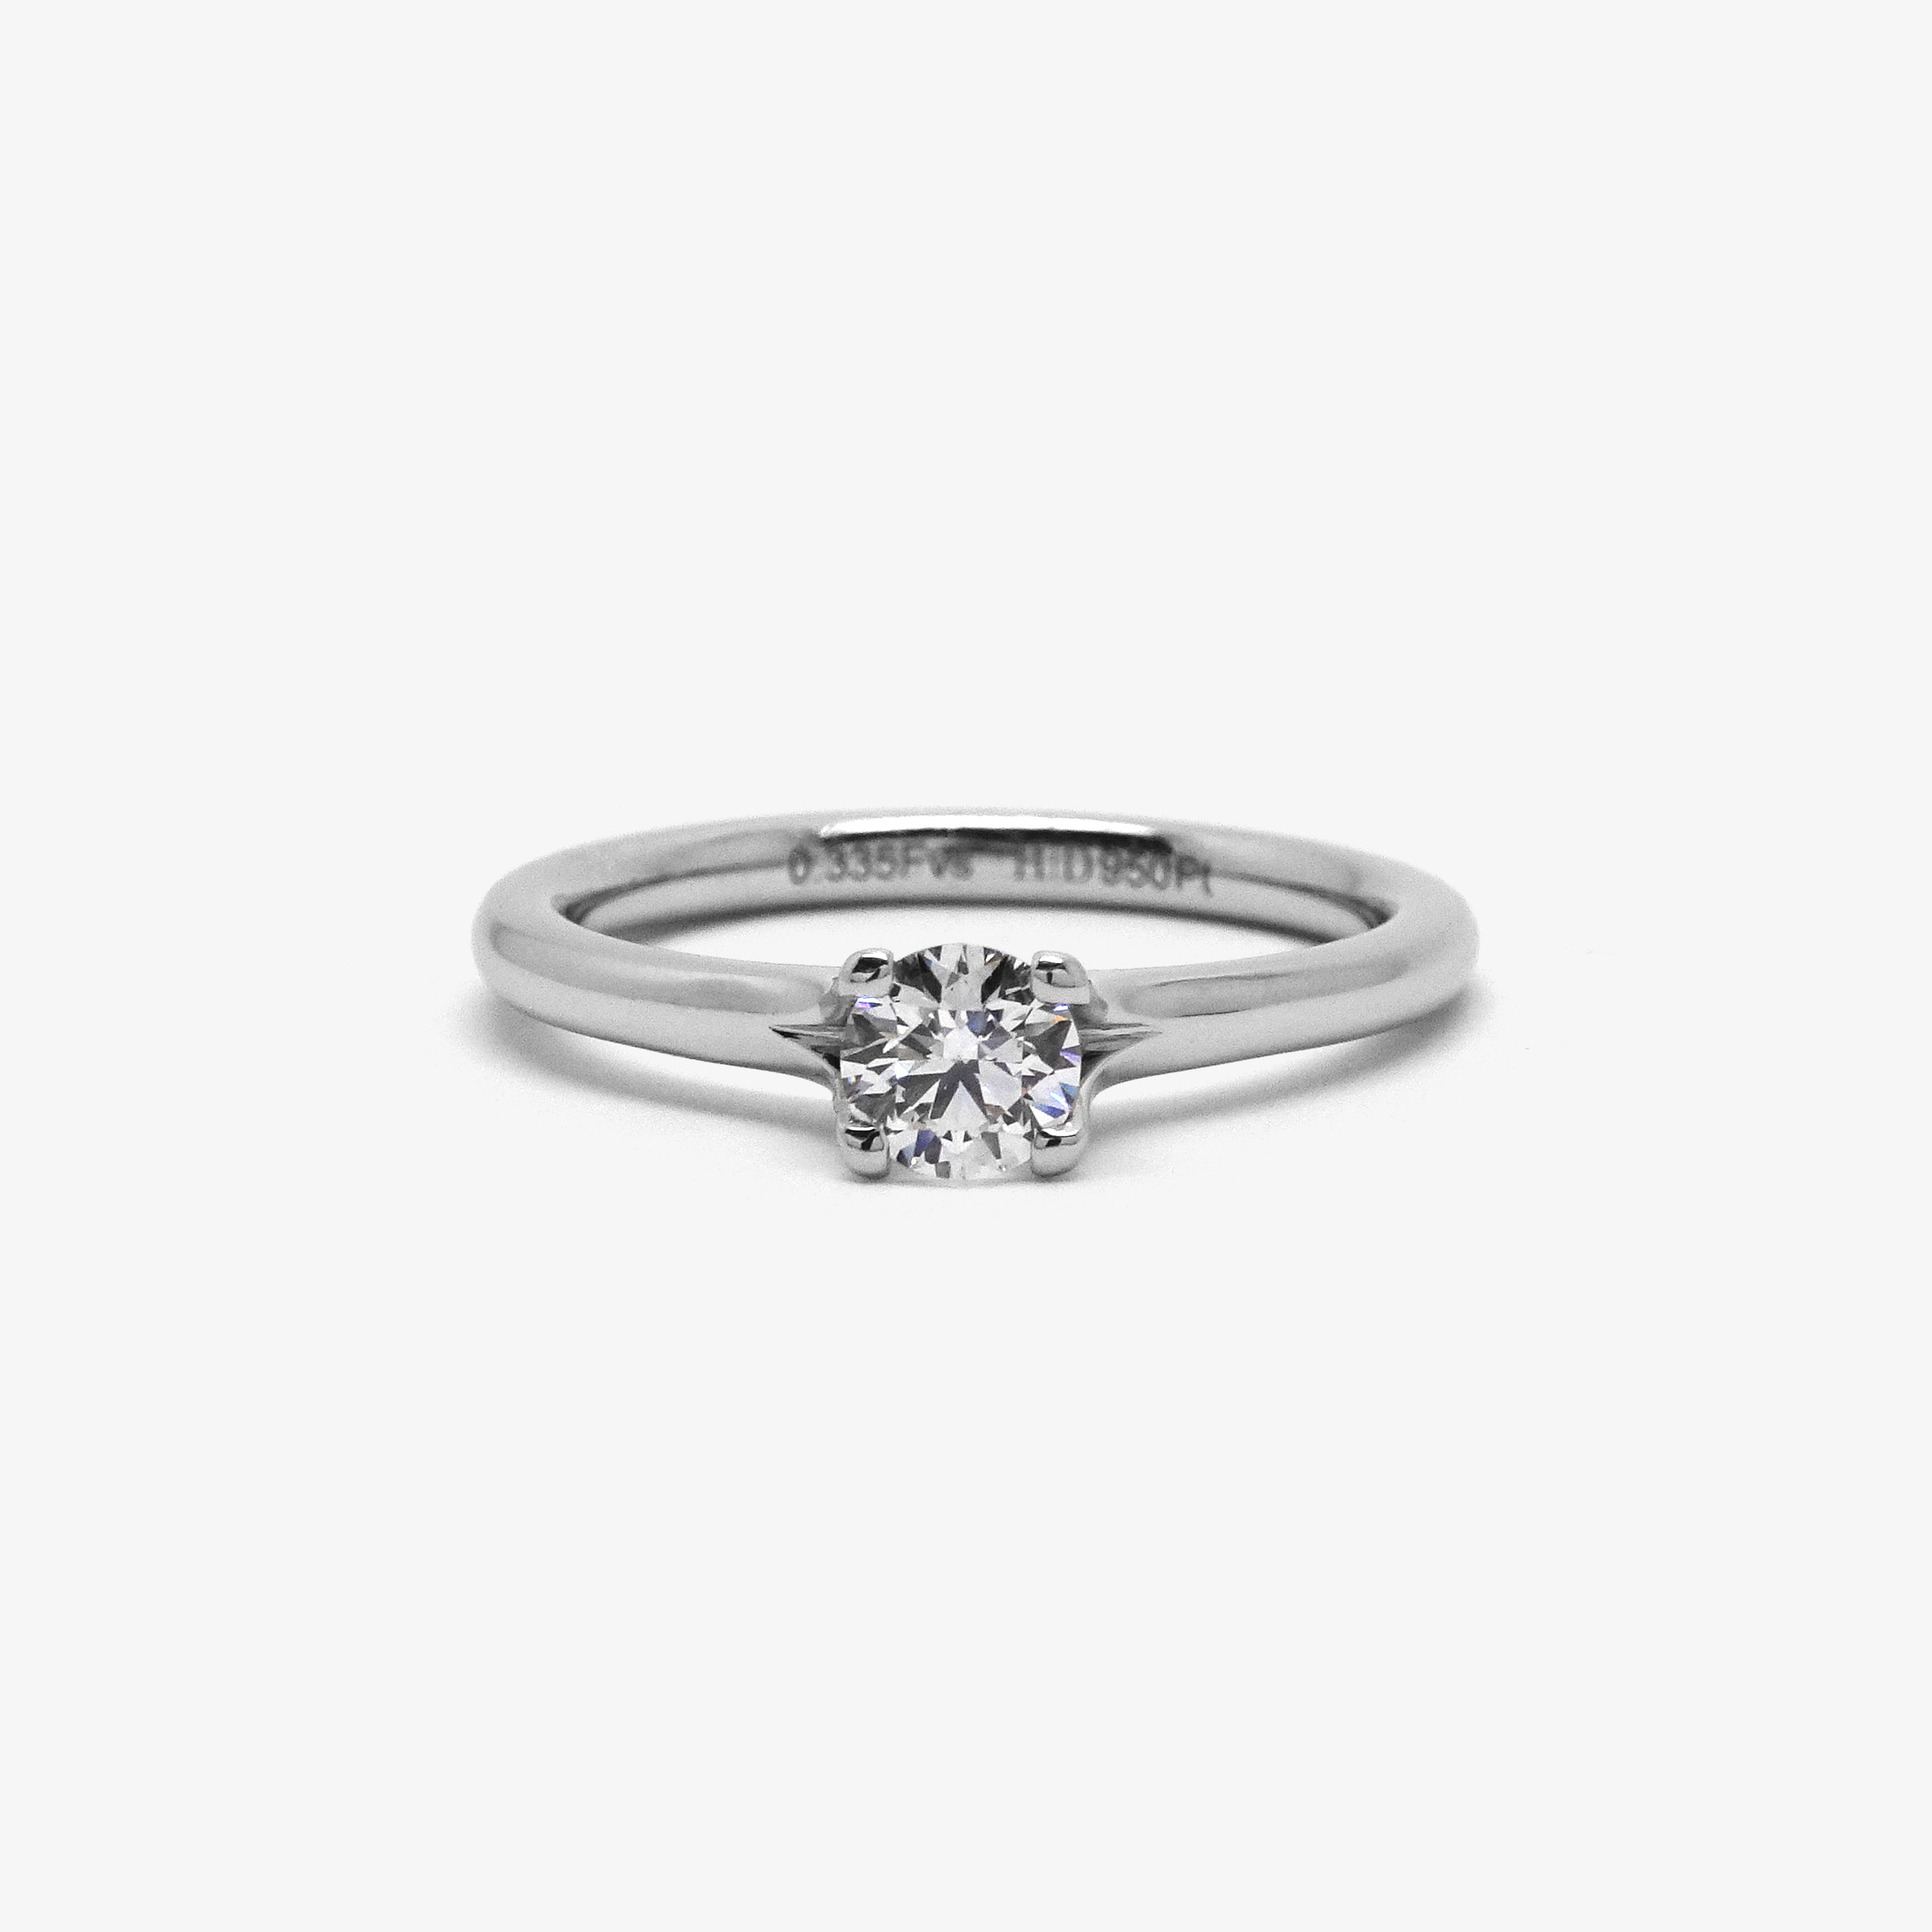 CORONA ENGAGENT RING - PLATINUM